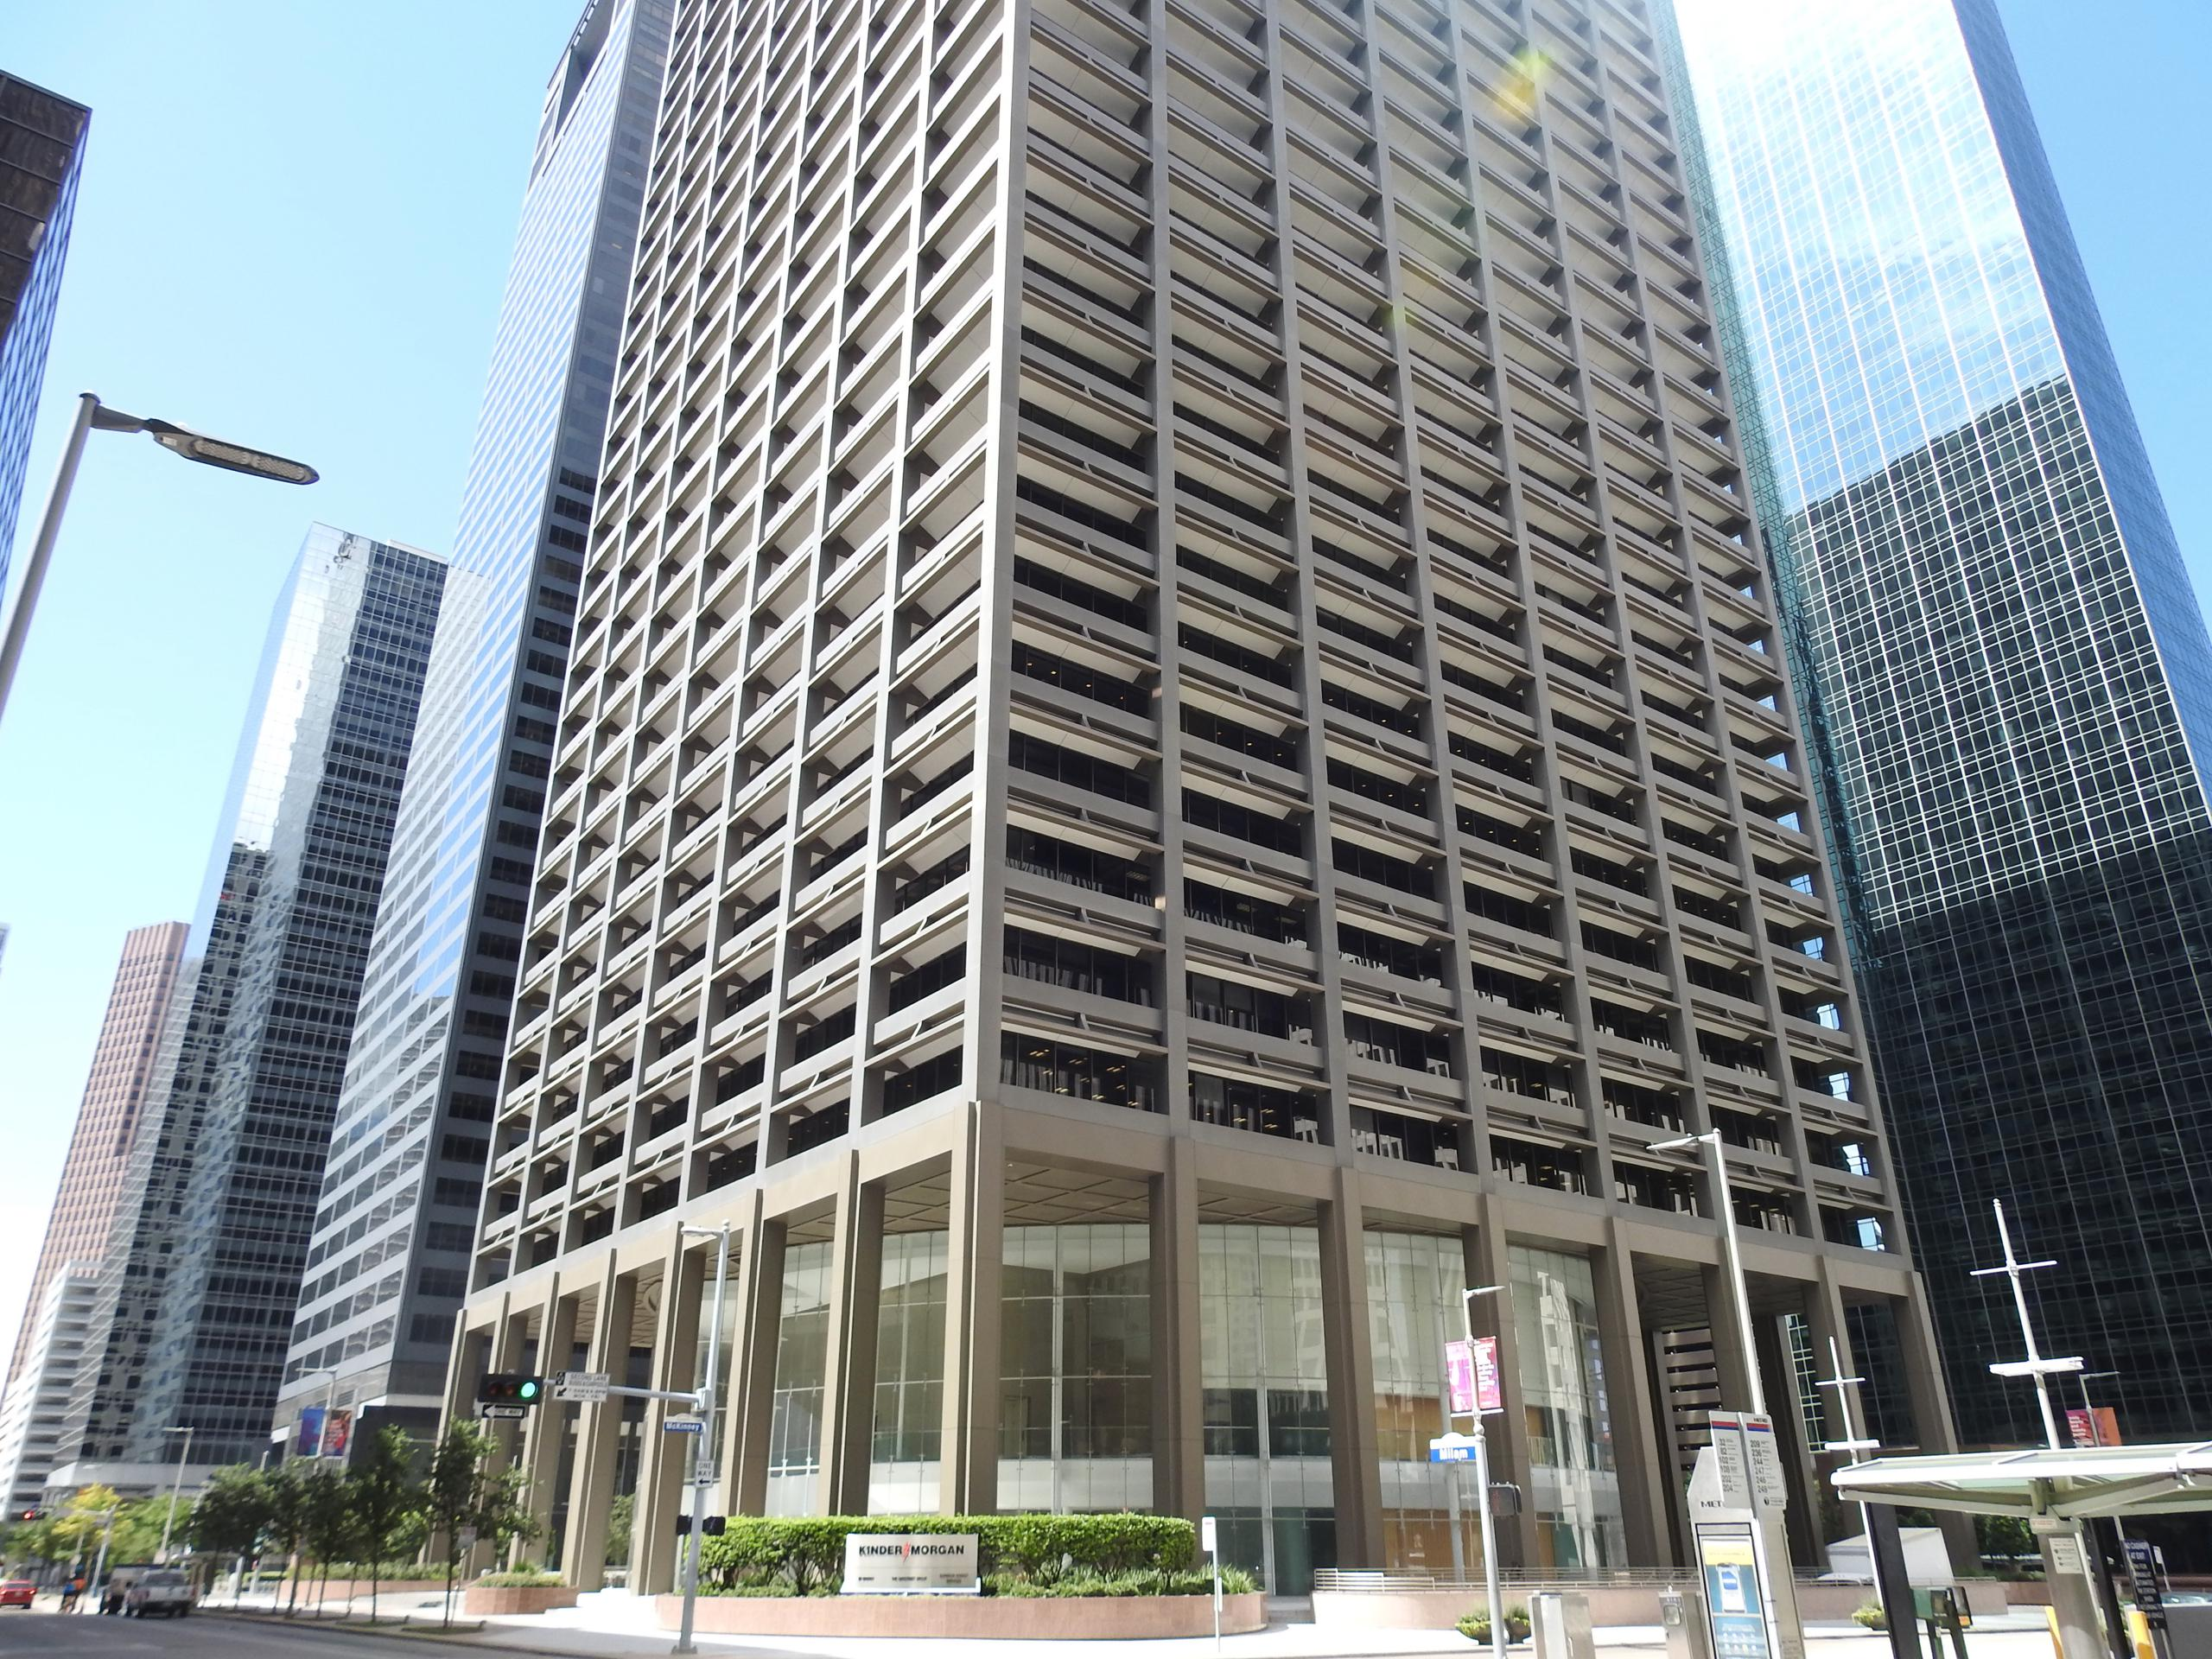 Kinder Morgan's corporate headquarters in downtown Houston, Texas.